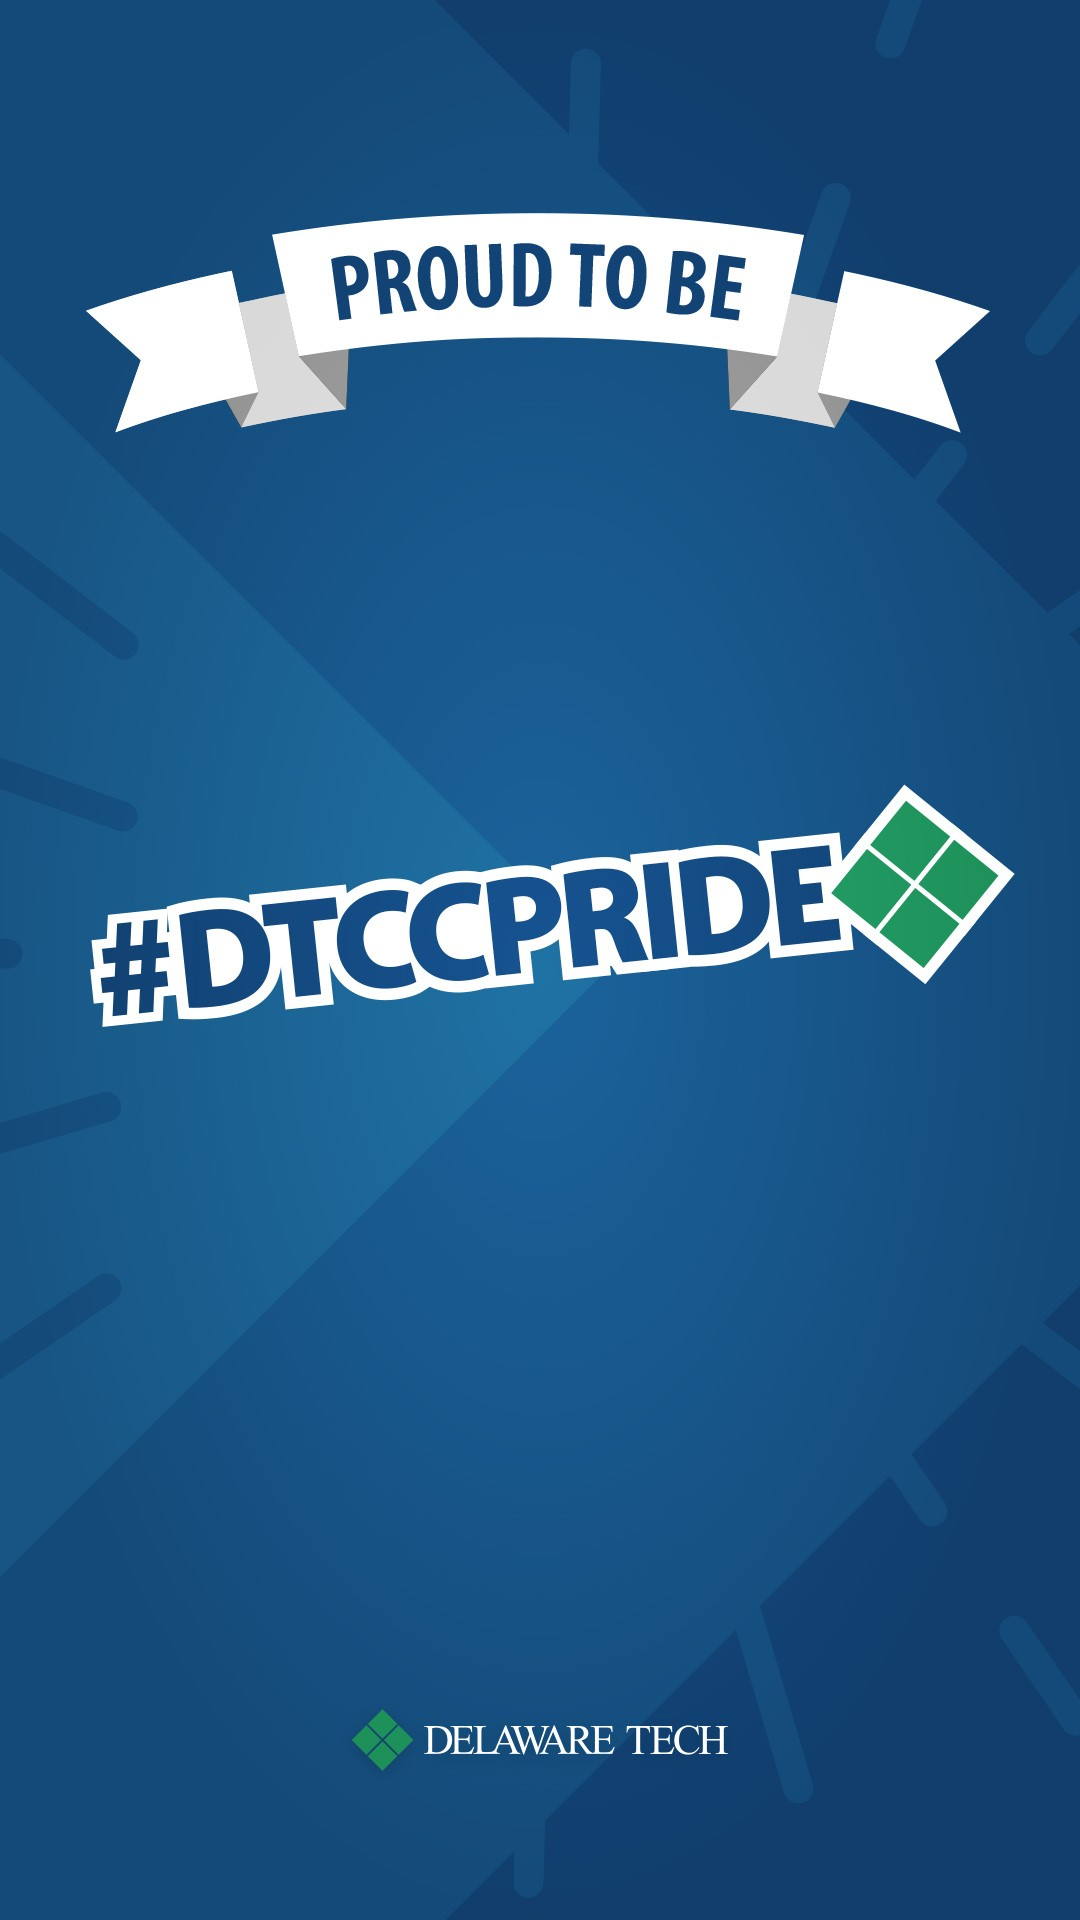 An image formatted for Instagram stories that says Proud to Be at the top and has the hashtag DTCC Pride in the middle with the Delaware Tech logo